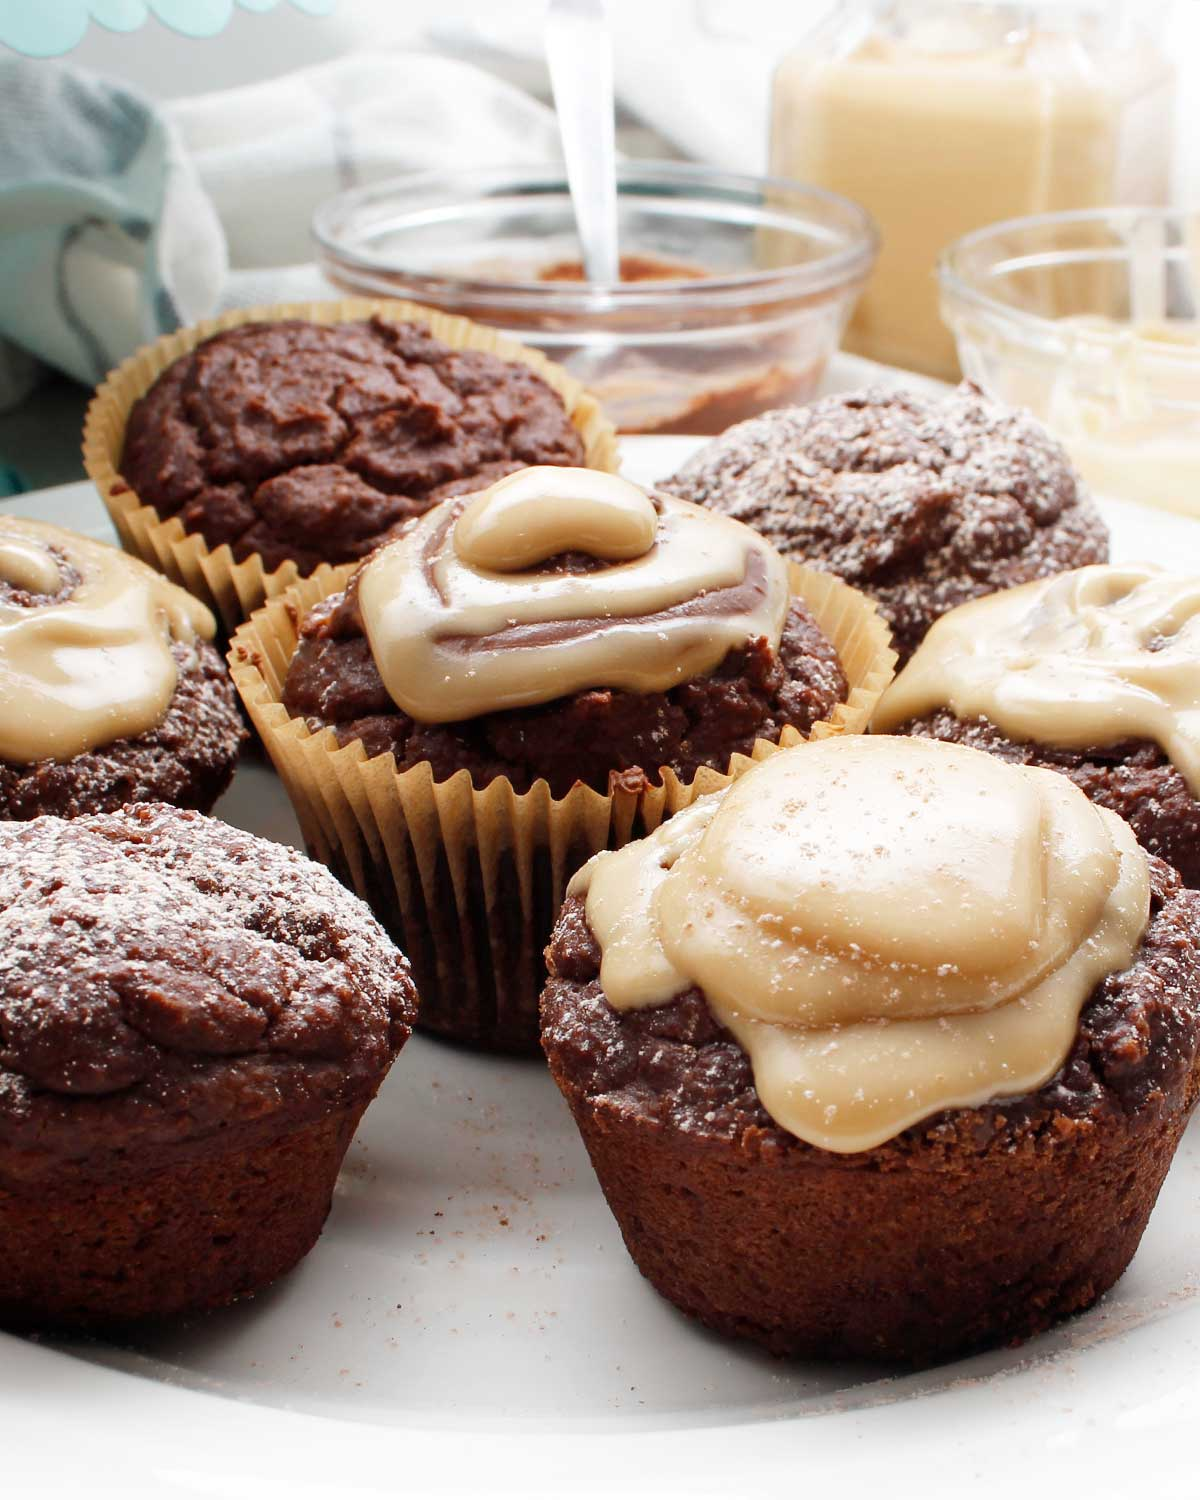 Decorate chocolate cupcakes with powdered sugar, maple cream or chocolate icing.